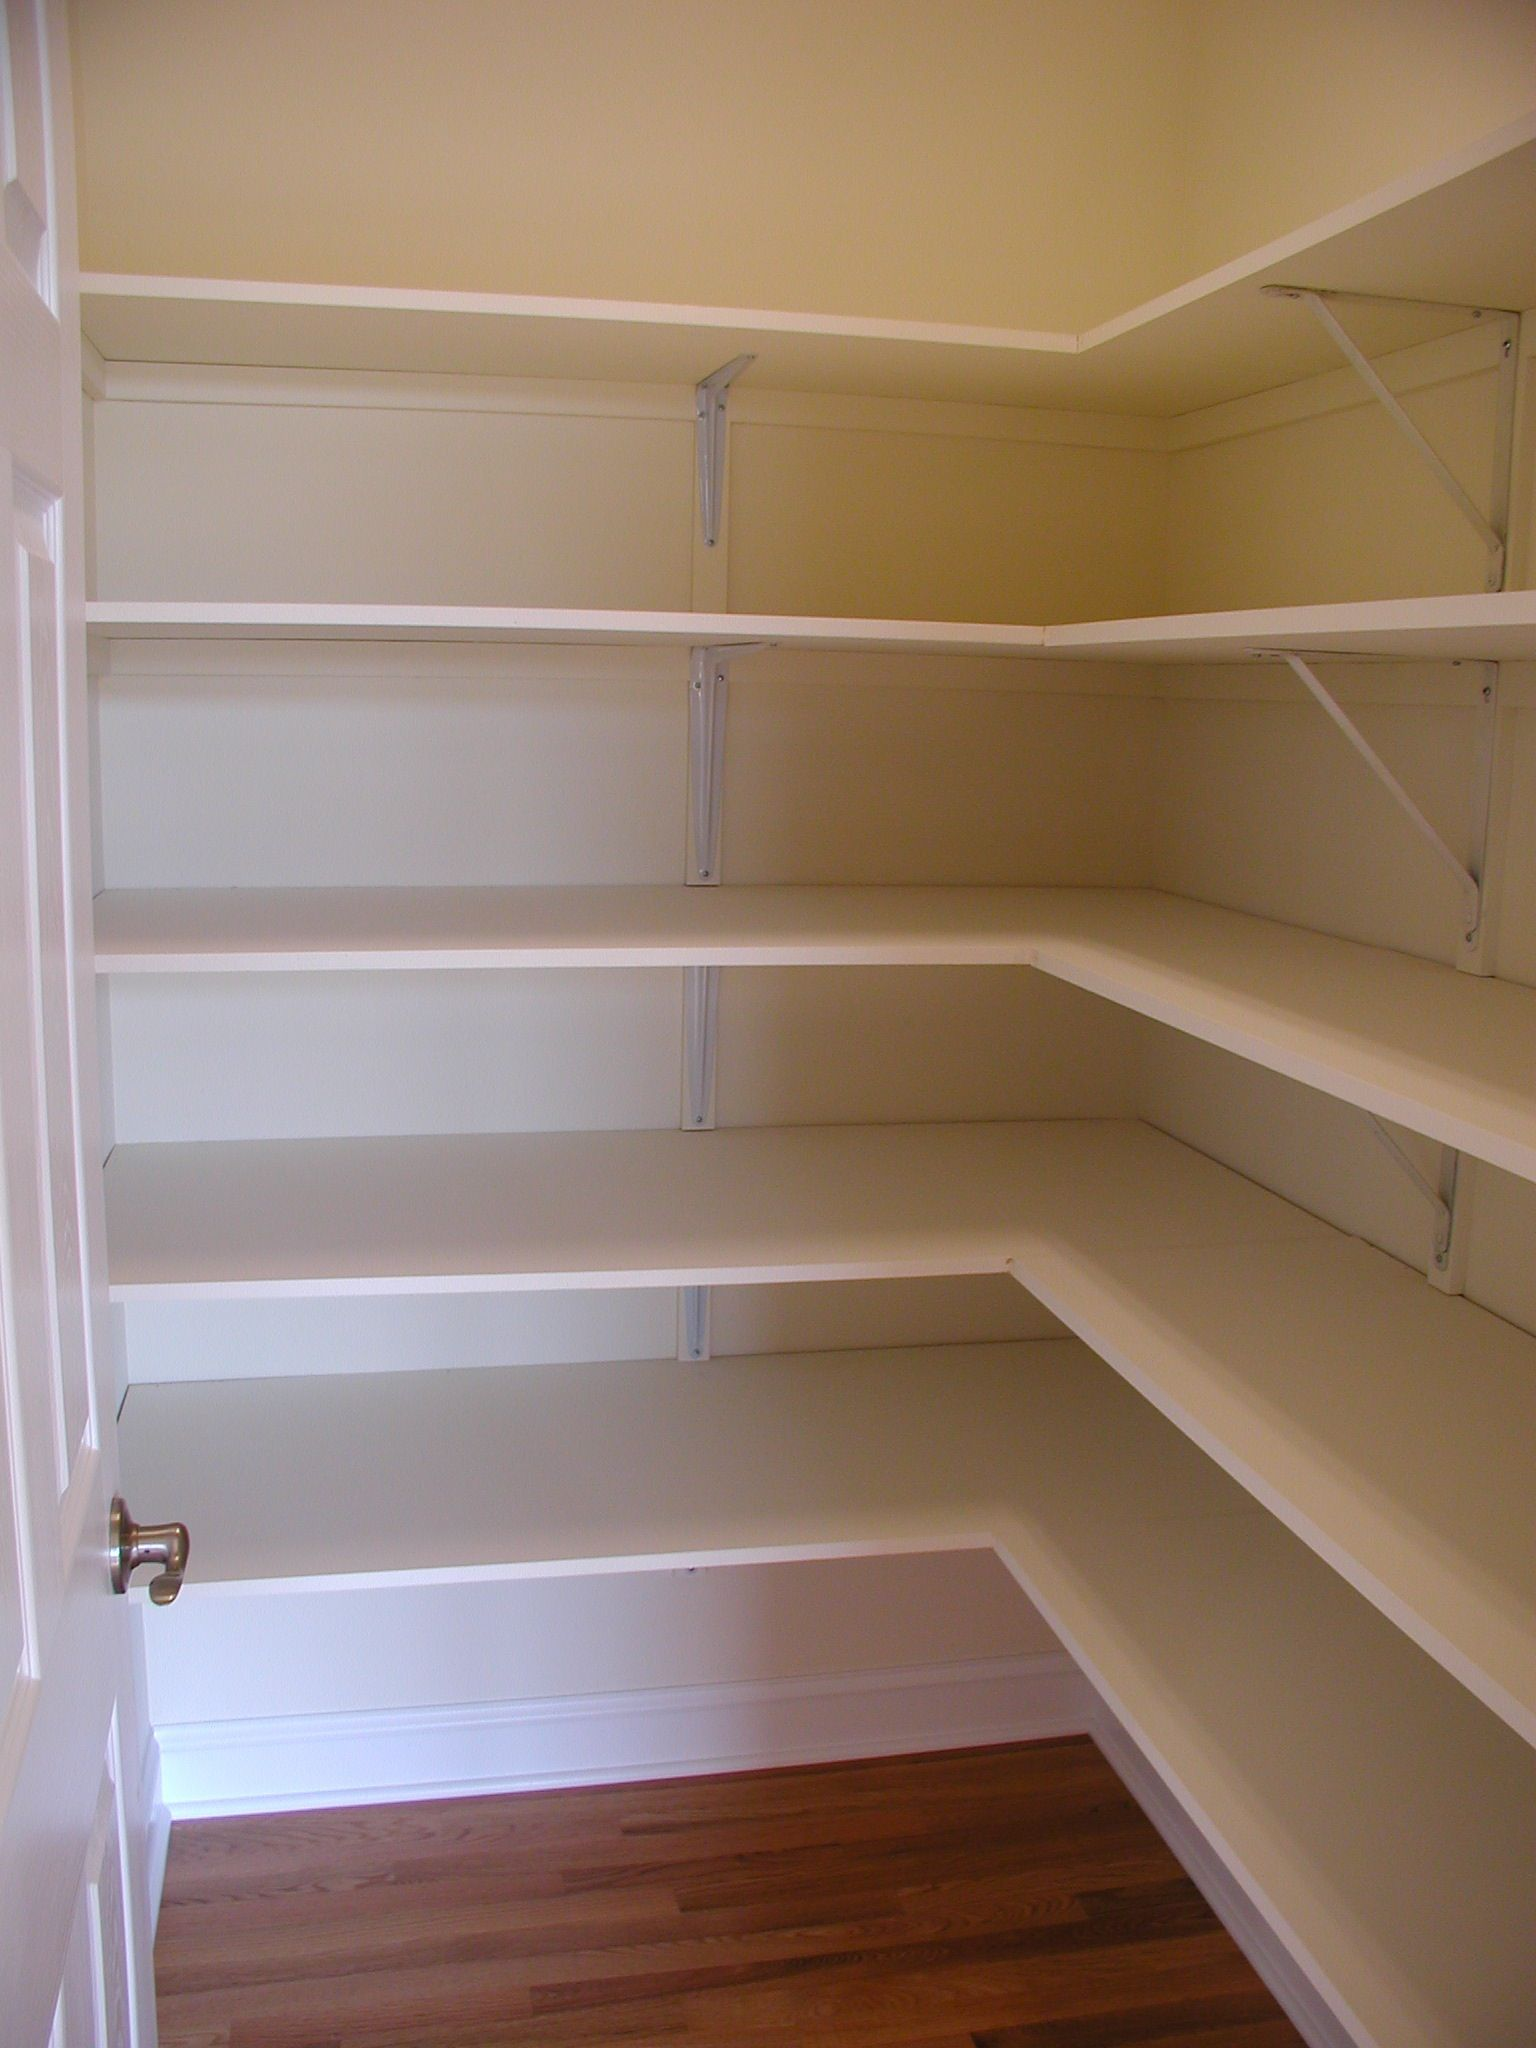 Walk In Linen Closet   Cut Down Some Of The Shelves To Incorporate Broom  Storage